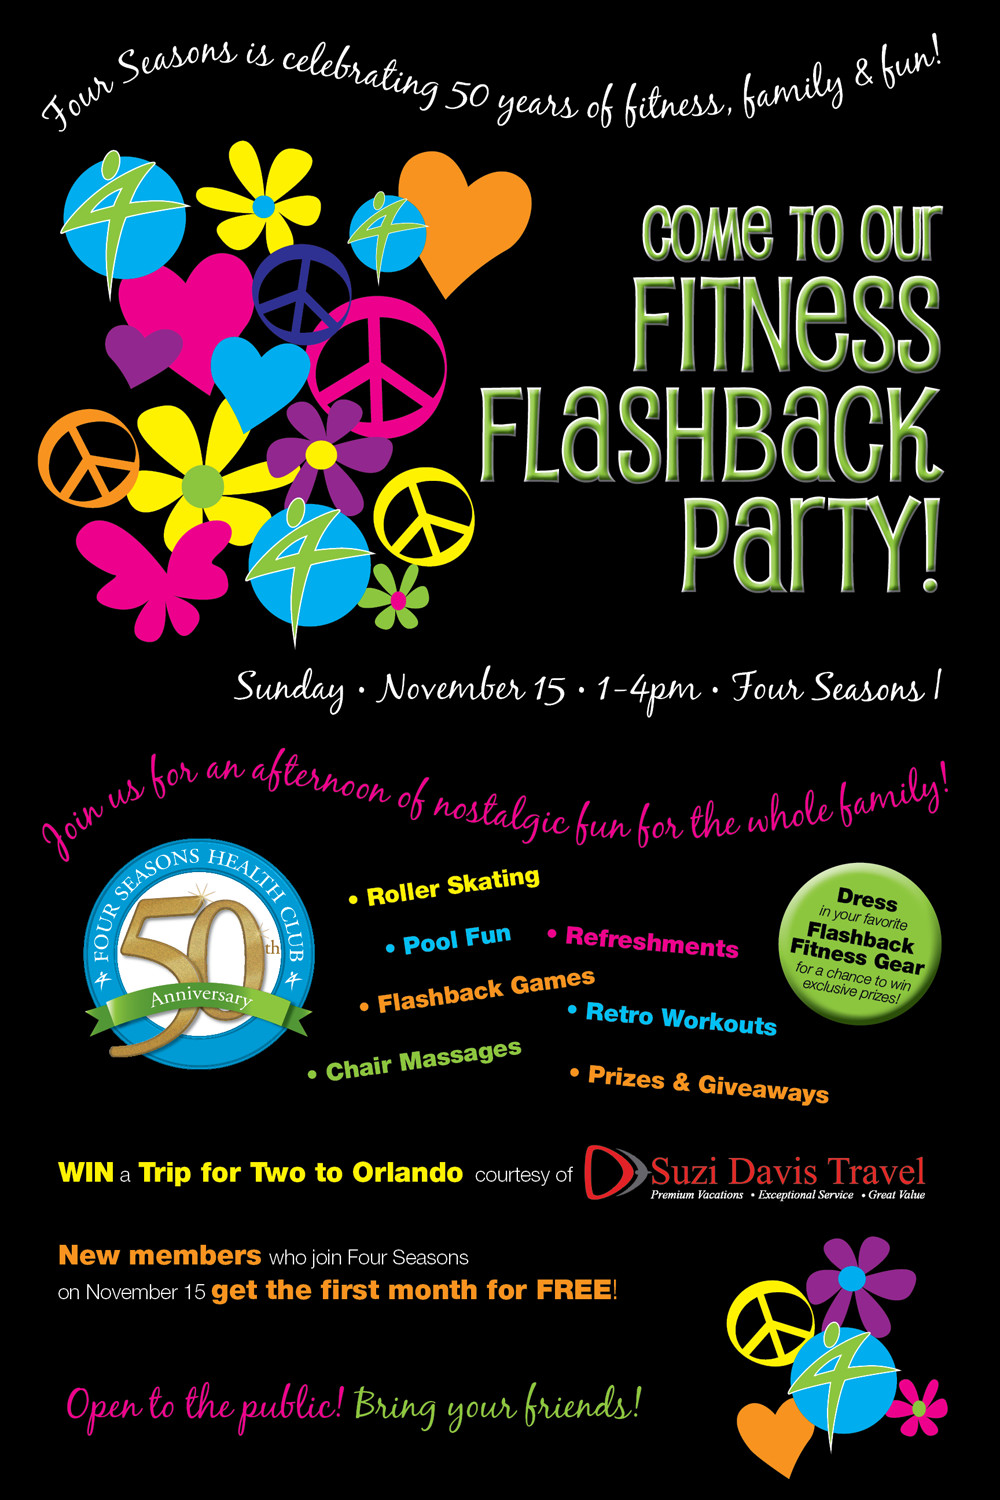 Come to our fitness flashback party!